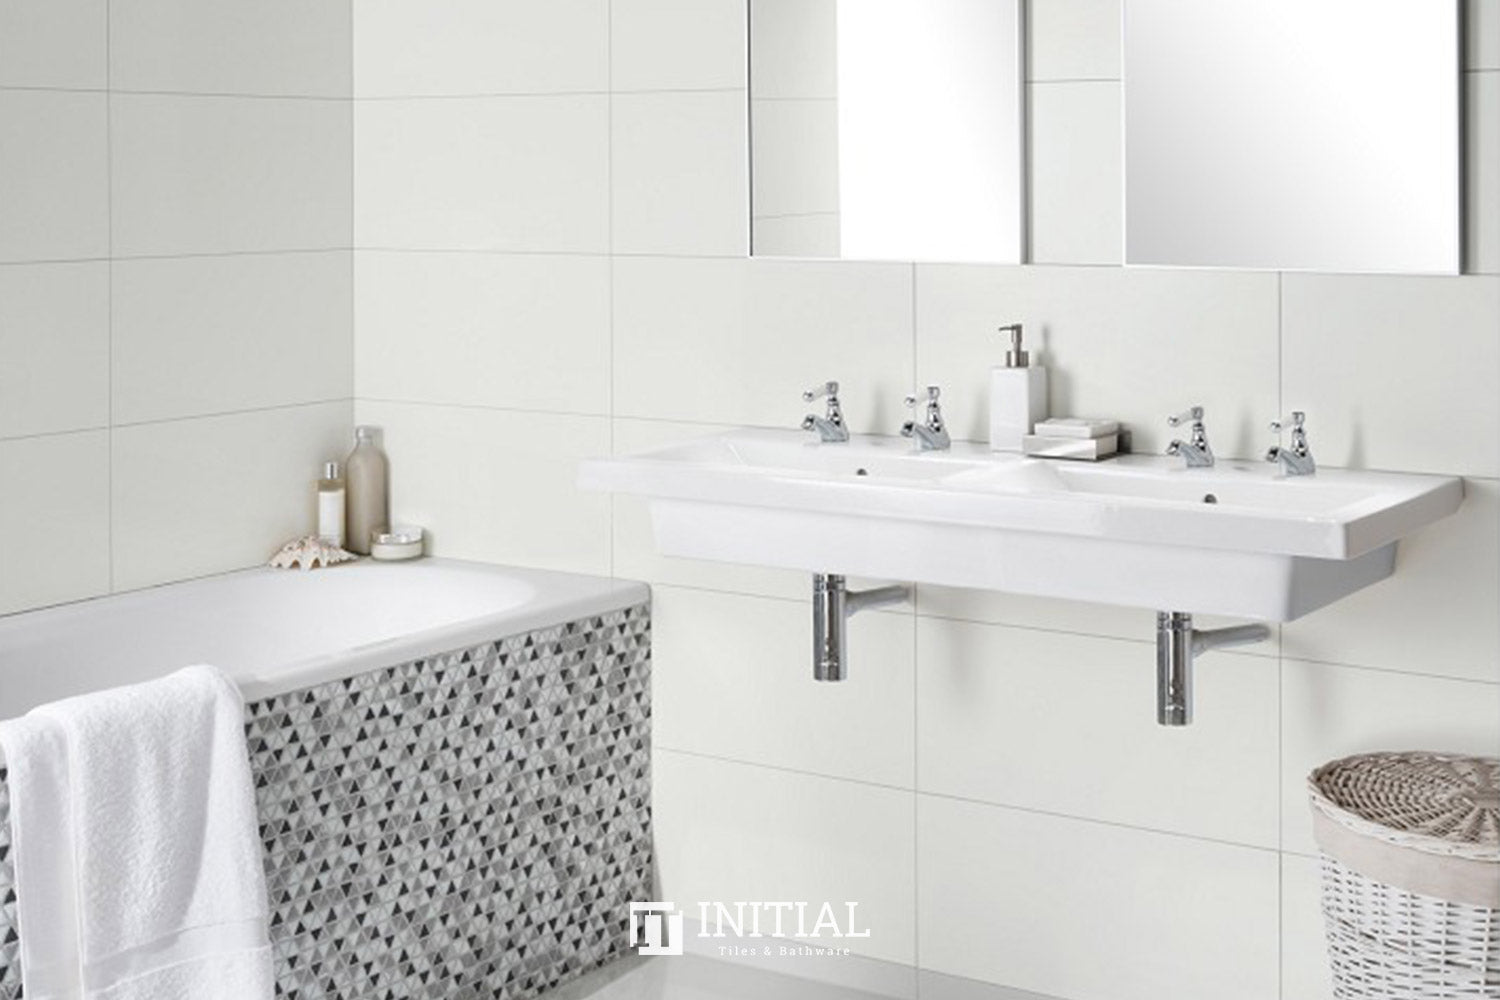 Bathroom Wall Tile White Rectified Matt Ceramic Tile 300X600